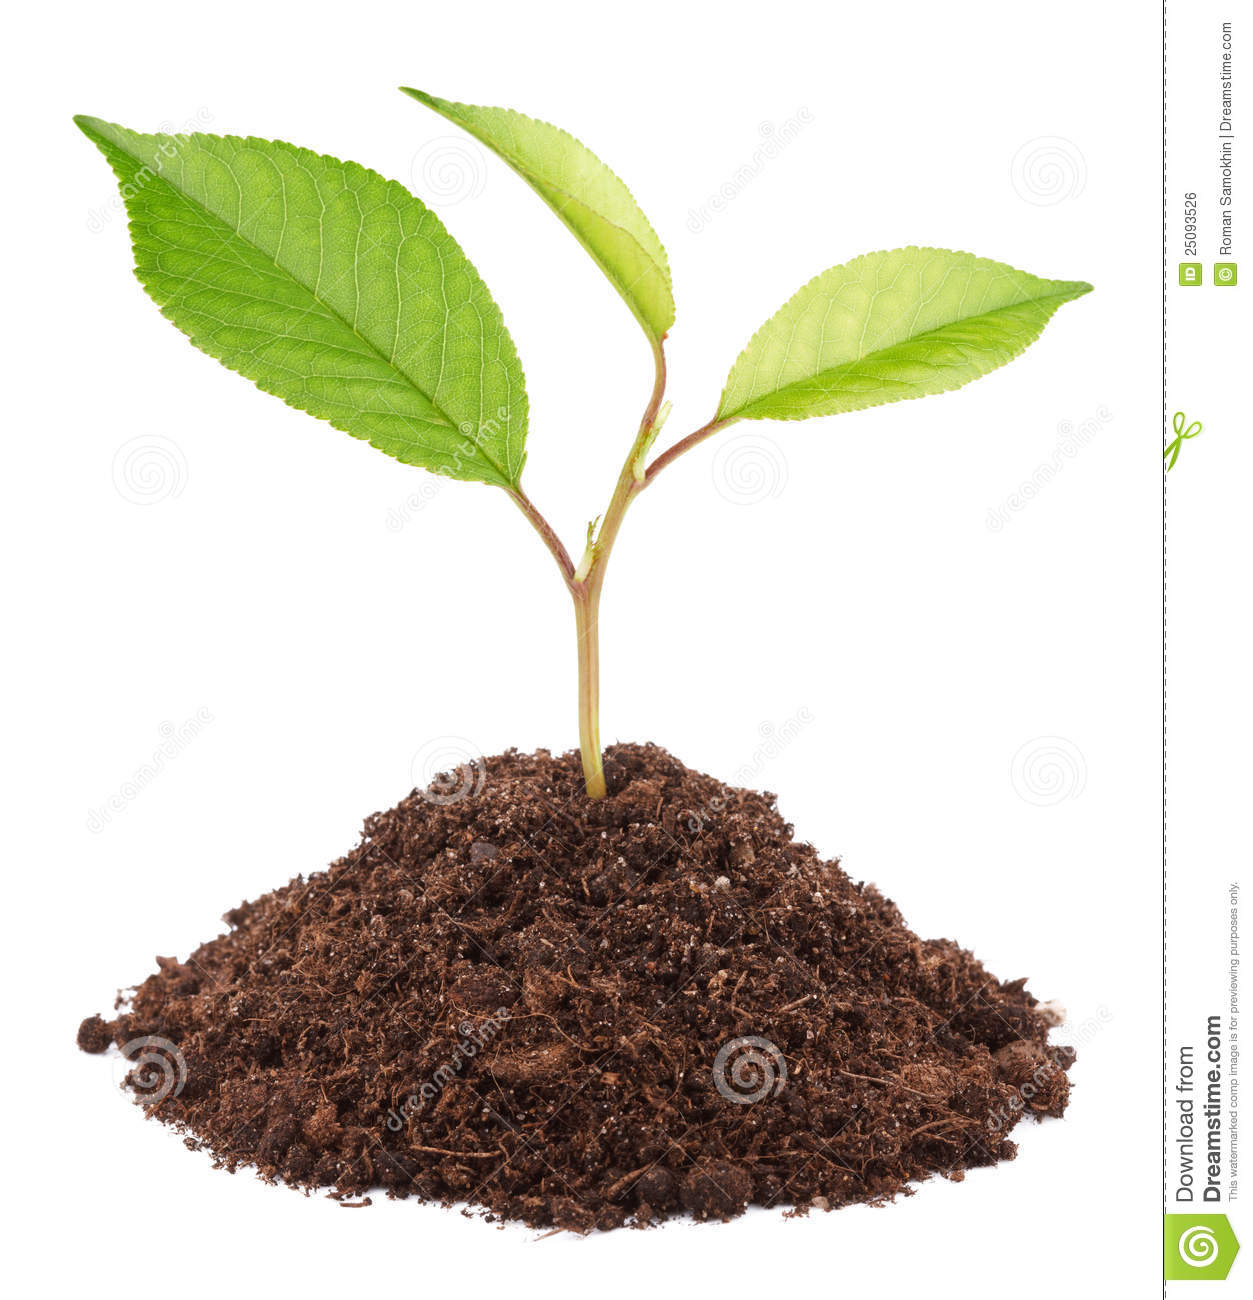 Royalty Free Stock Image Green Sapling Apple Tree Image25093526 on Green Environmental Clip Art